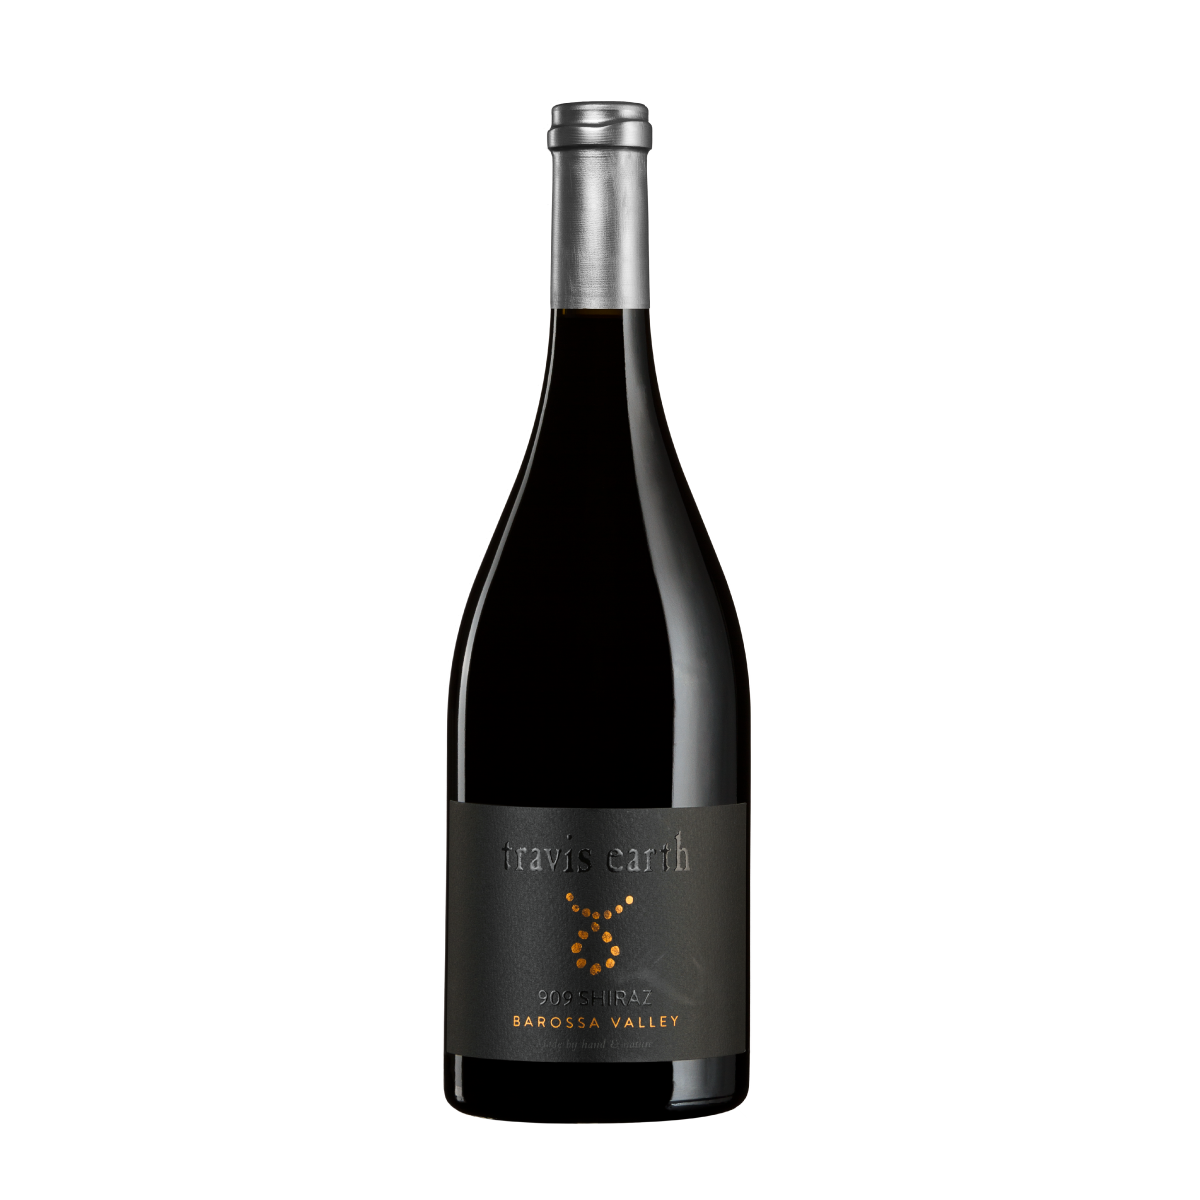 909-shiraz-travis-earth-barossa